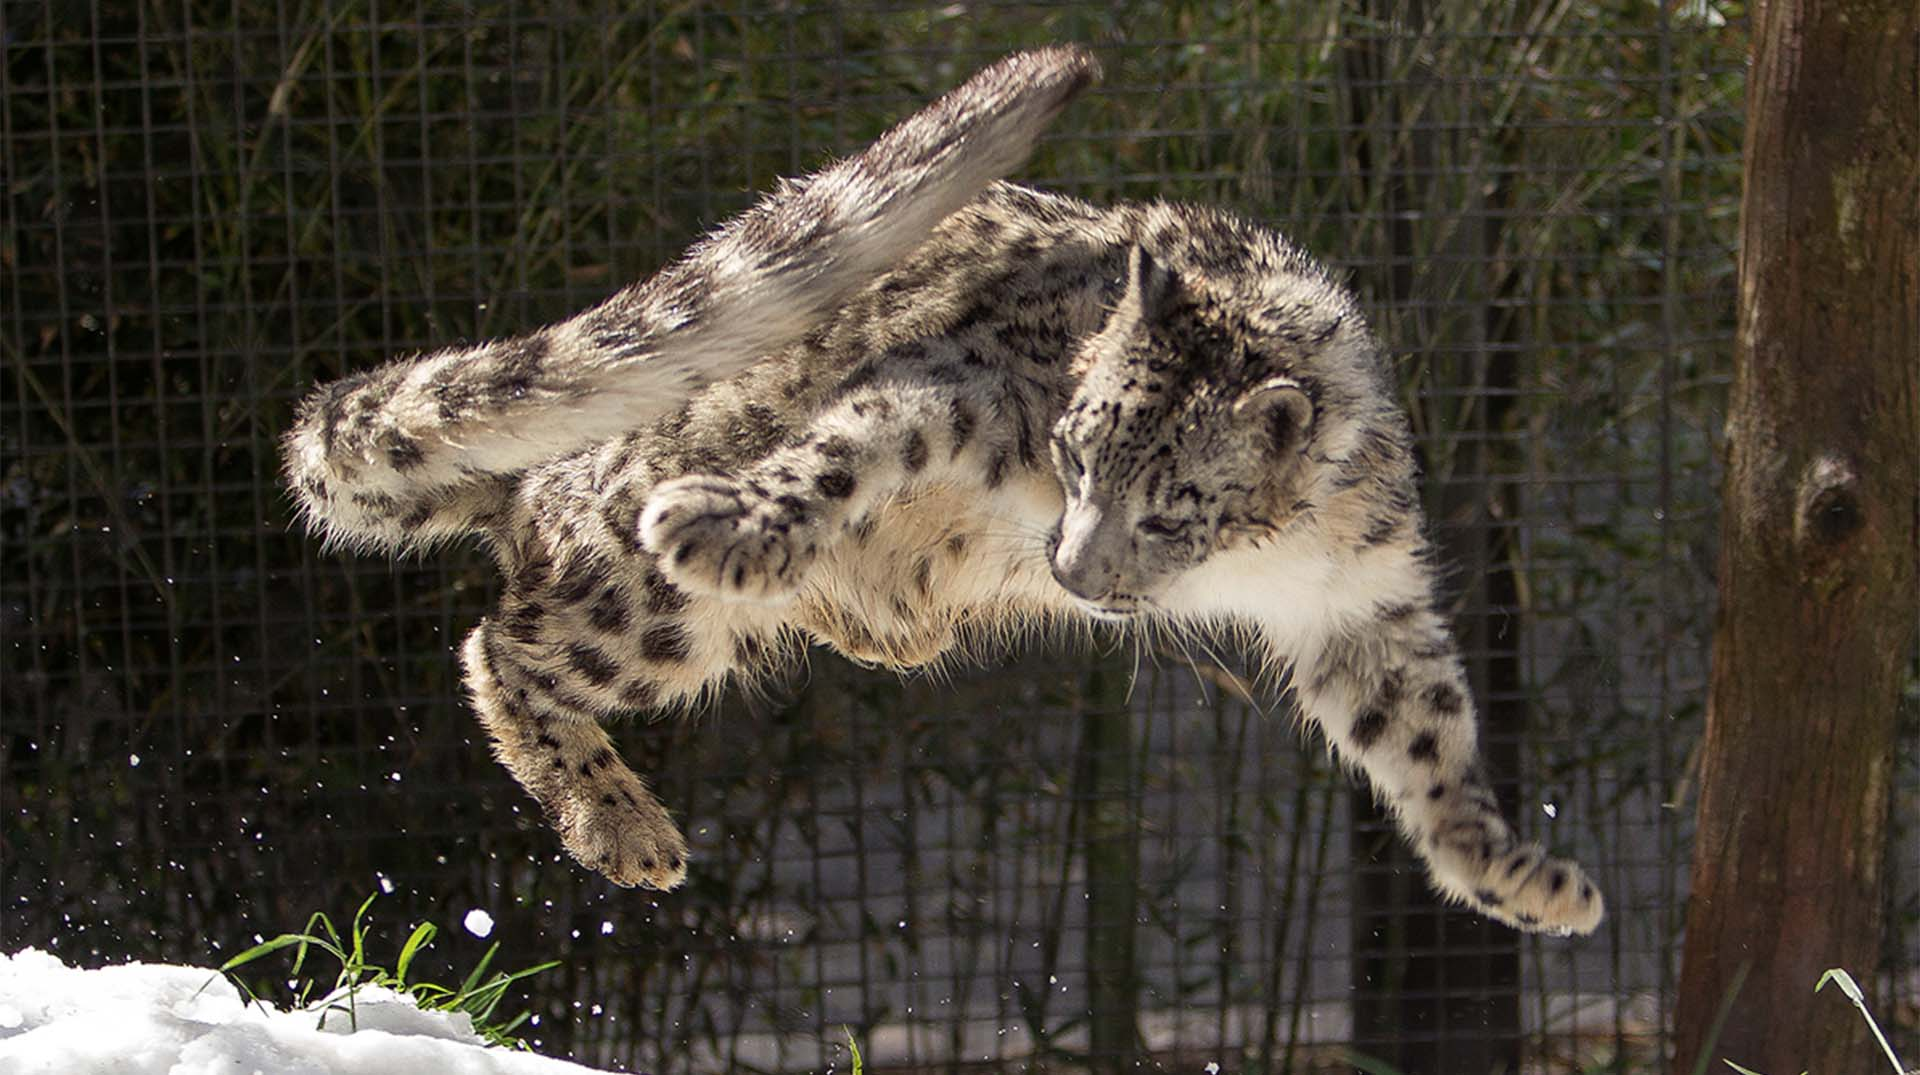 A snow leopard explores more than 30,000 pounds of snow in its Zoo habitat.